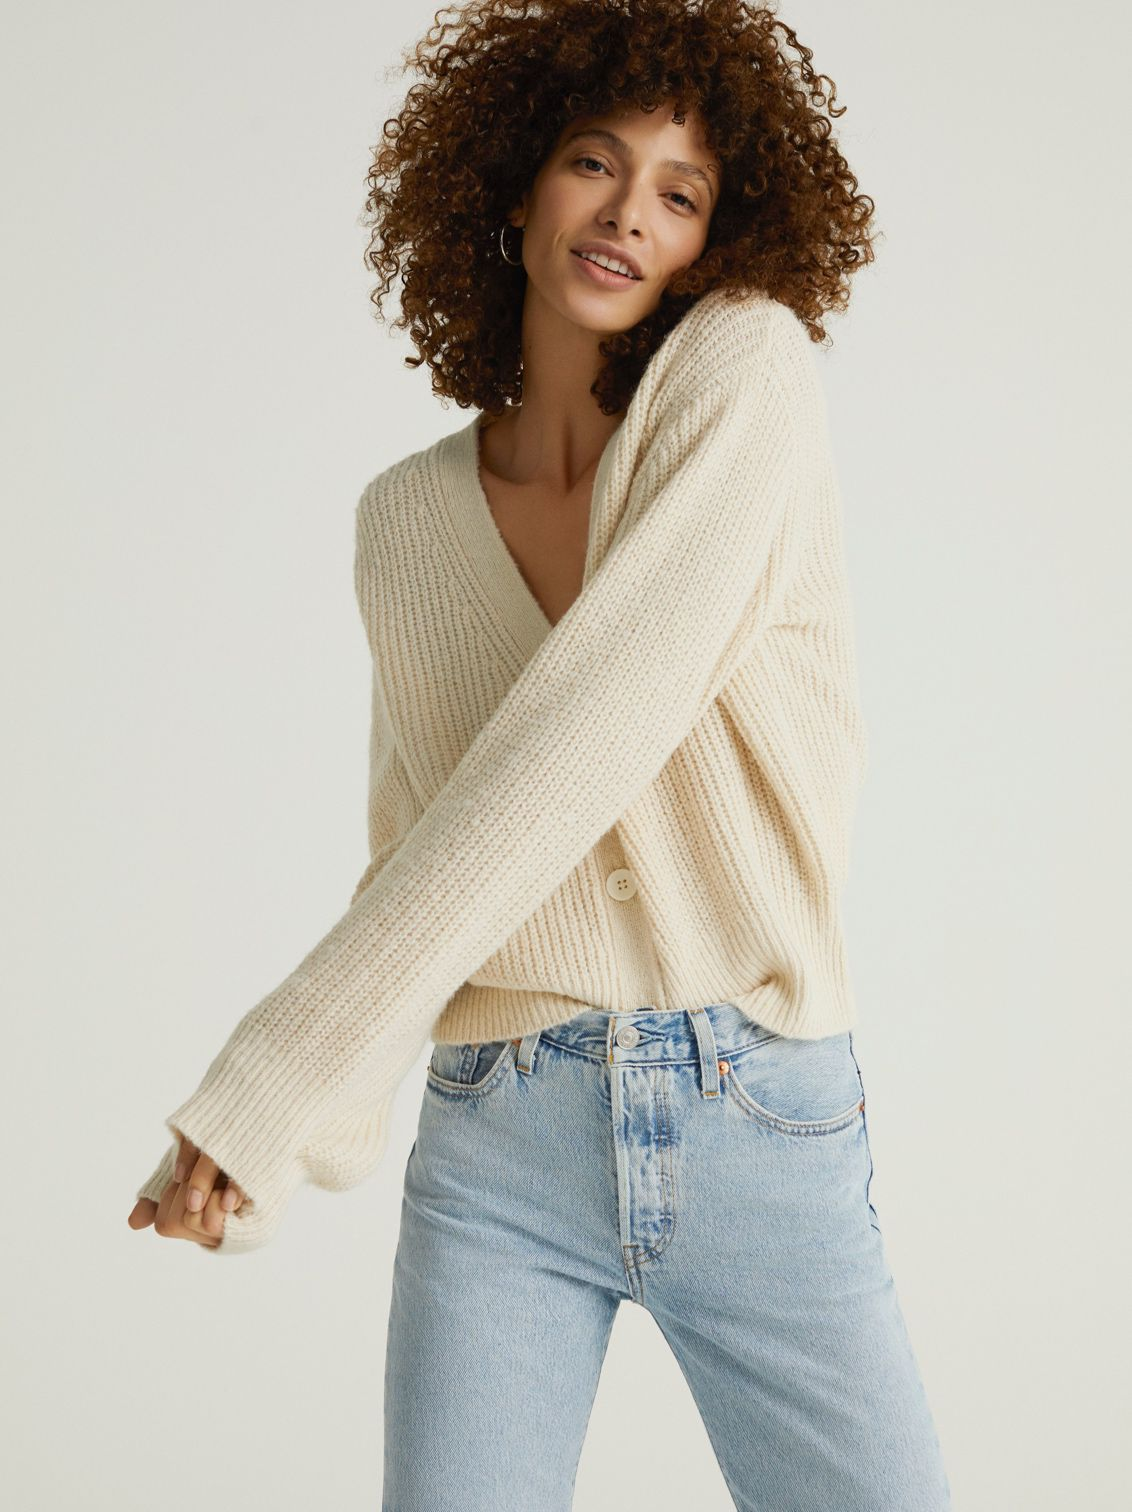 Woman standing in an And/or cream cardigan and Levi jeans